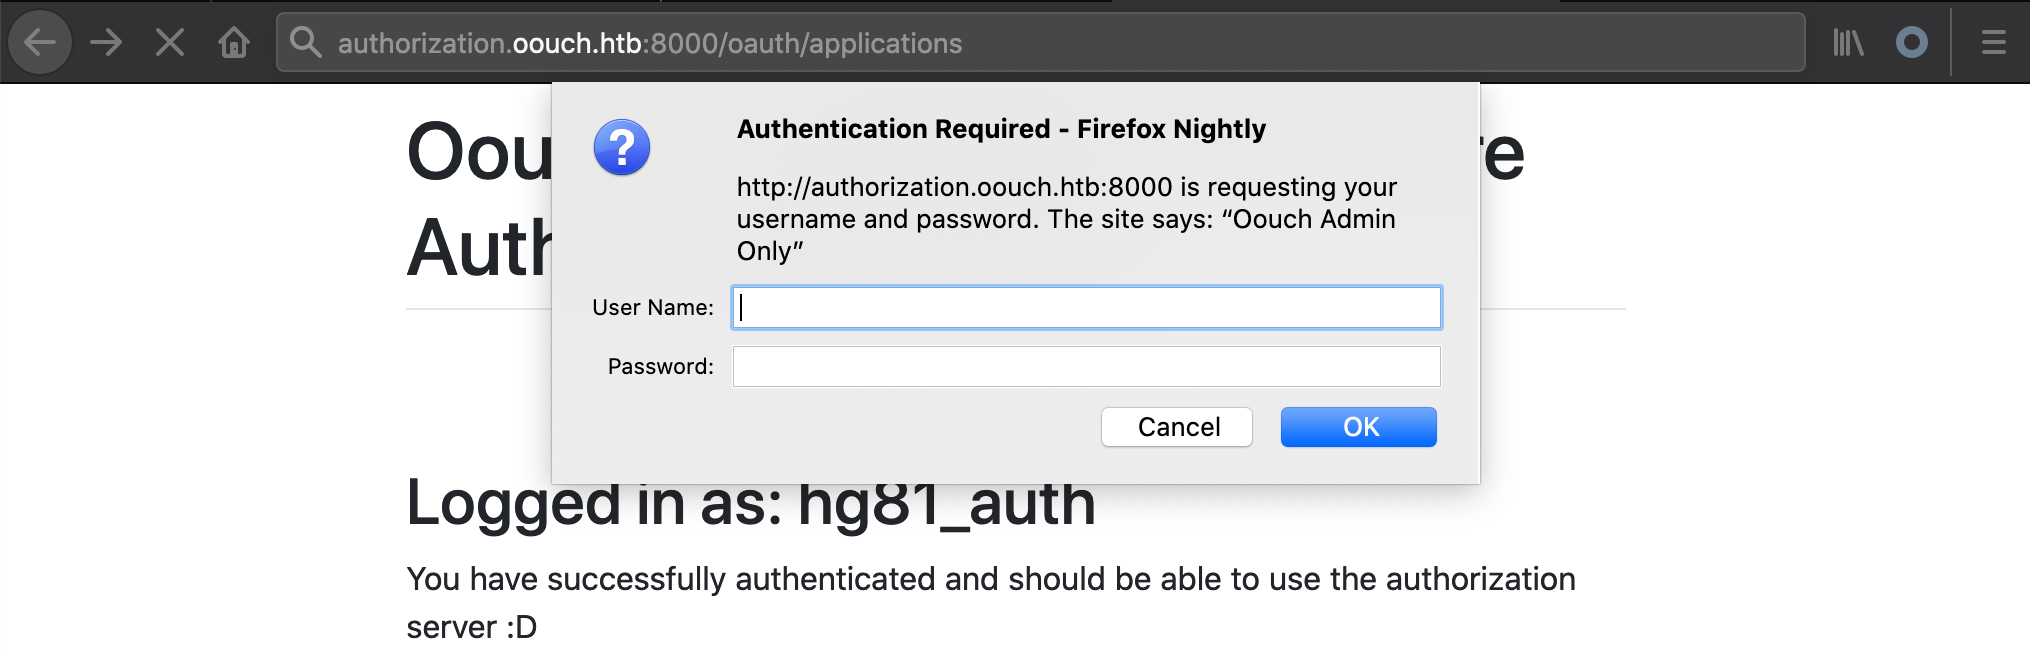 oouch oauth applications endpoint